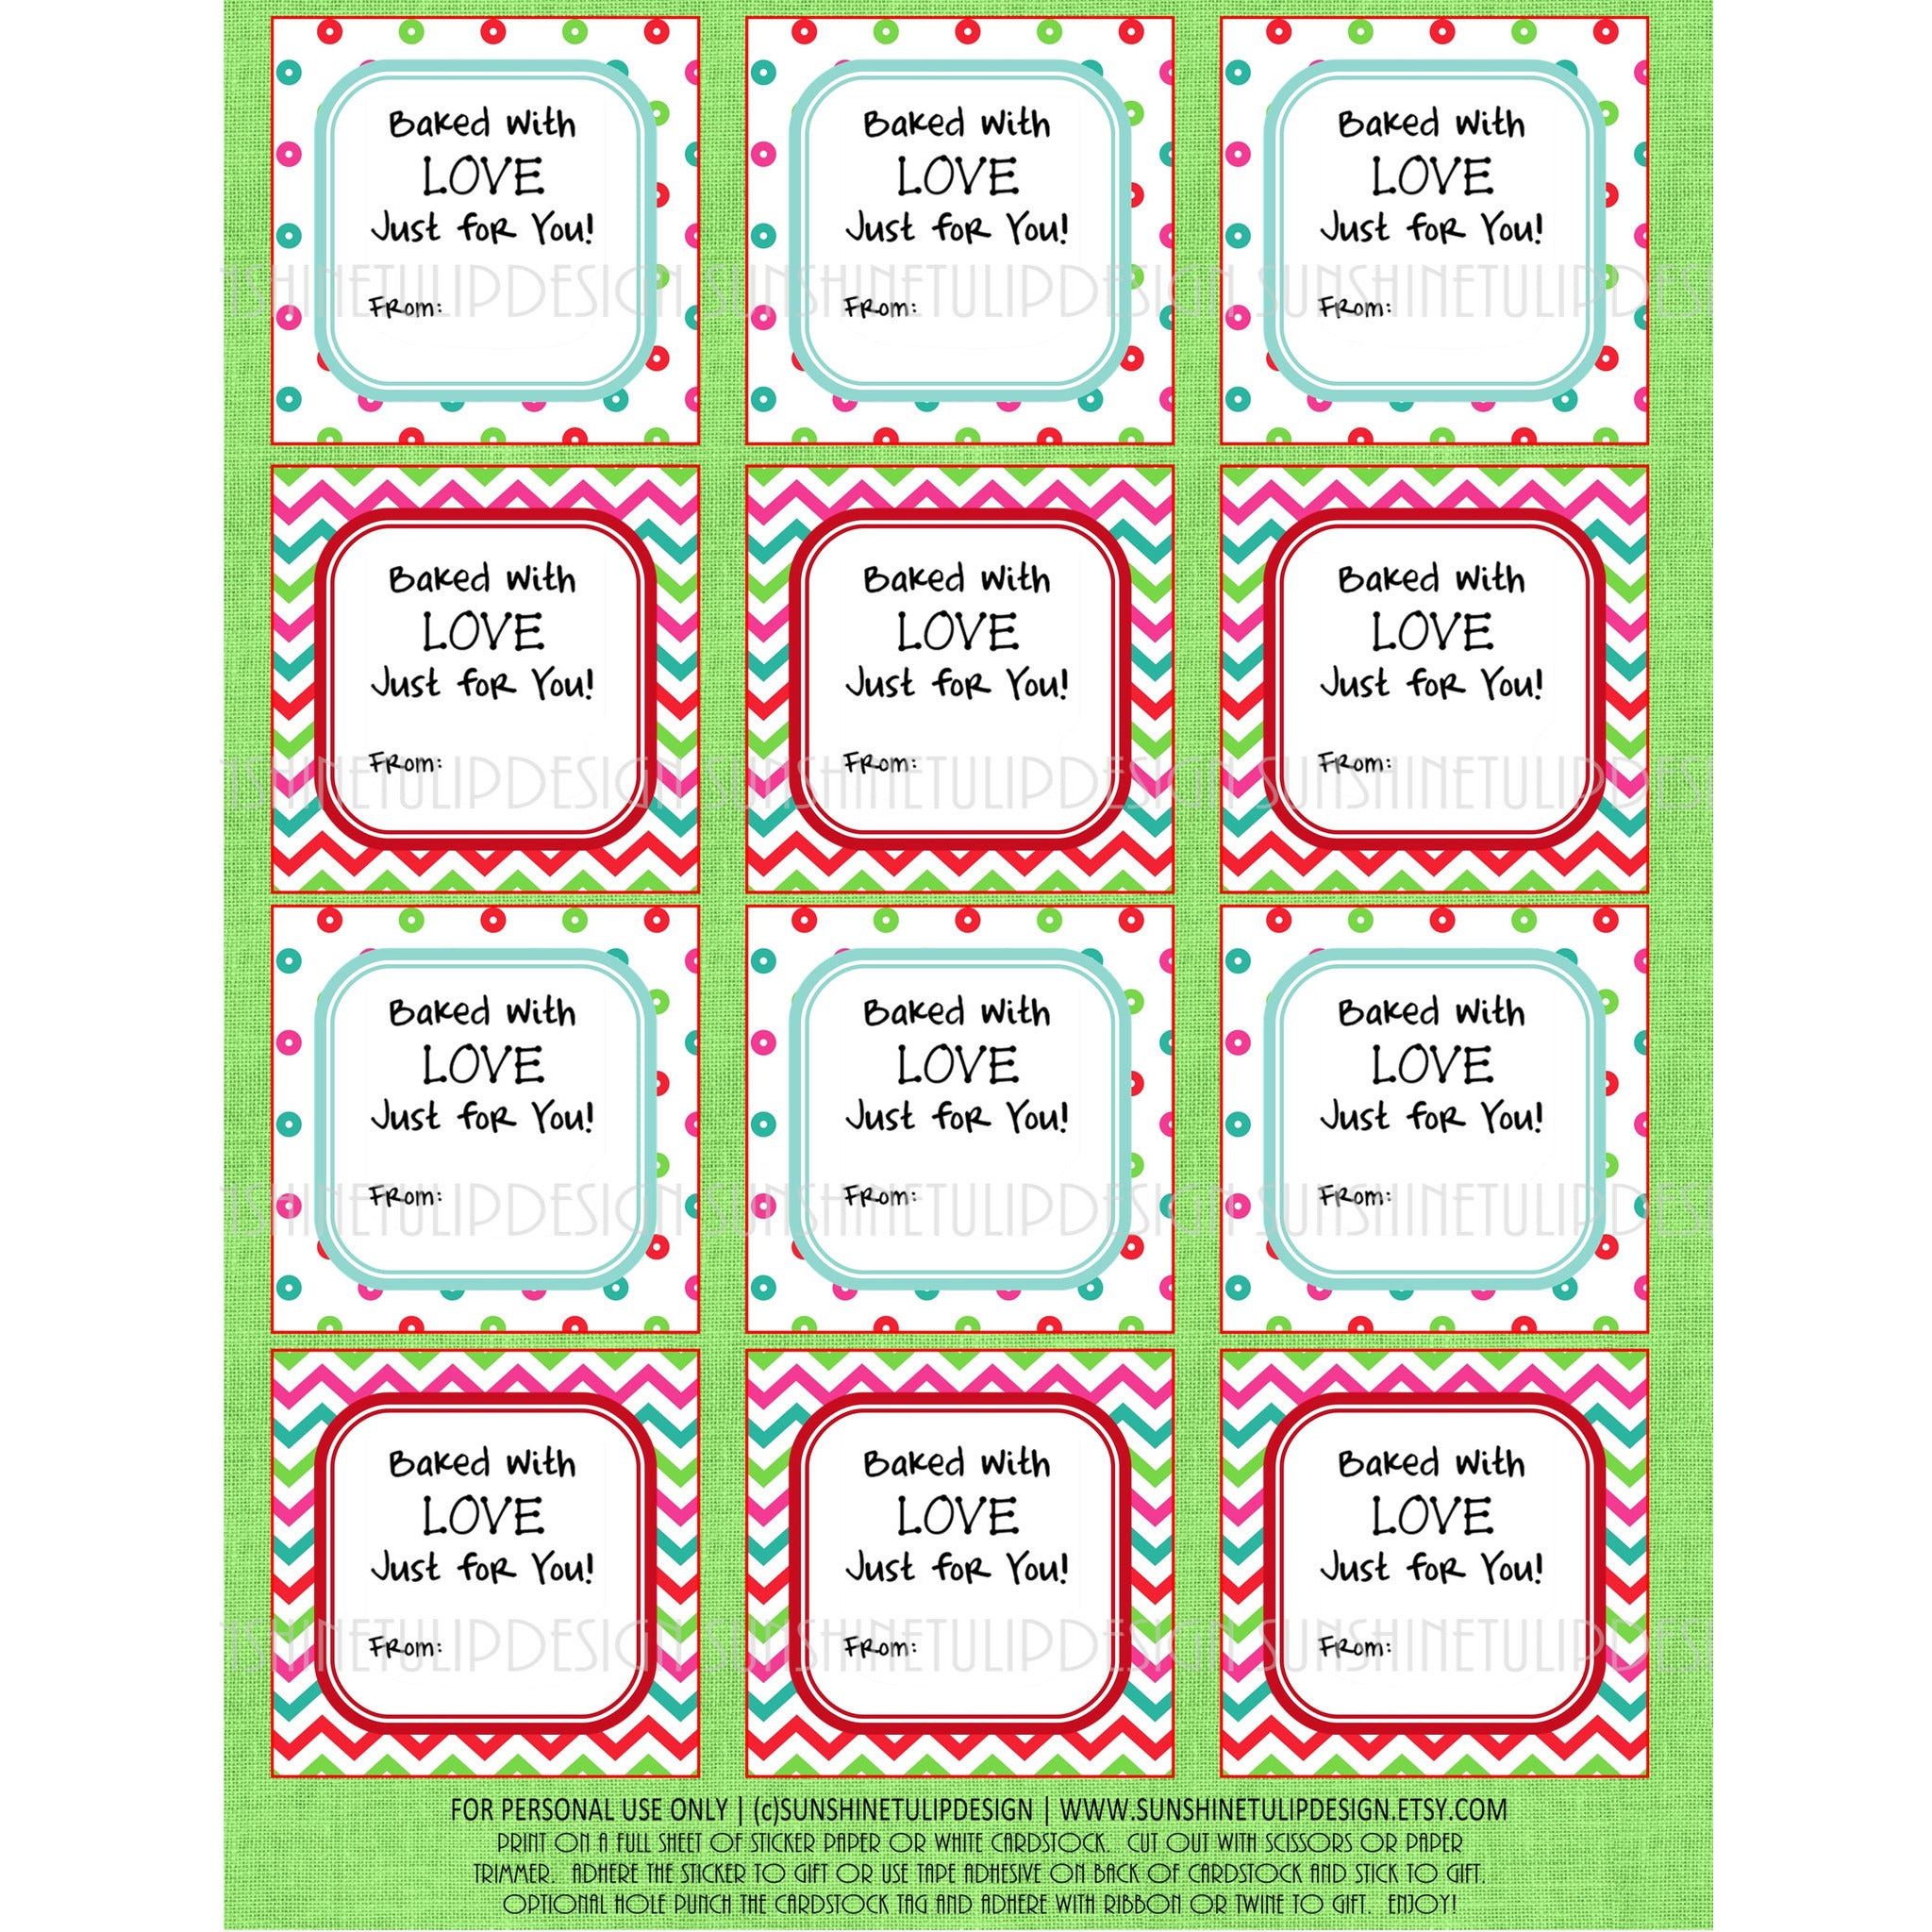 photo regarding Printable Food Labels titled Printable Xmas Foods Labels, Baked With Take pleasure in Xmas Reward Tags  Sticker Labels